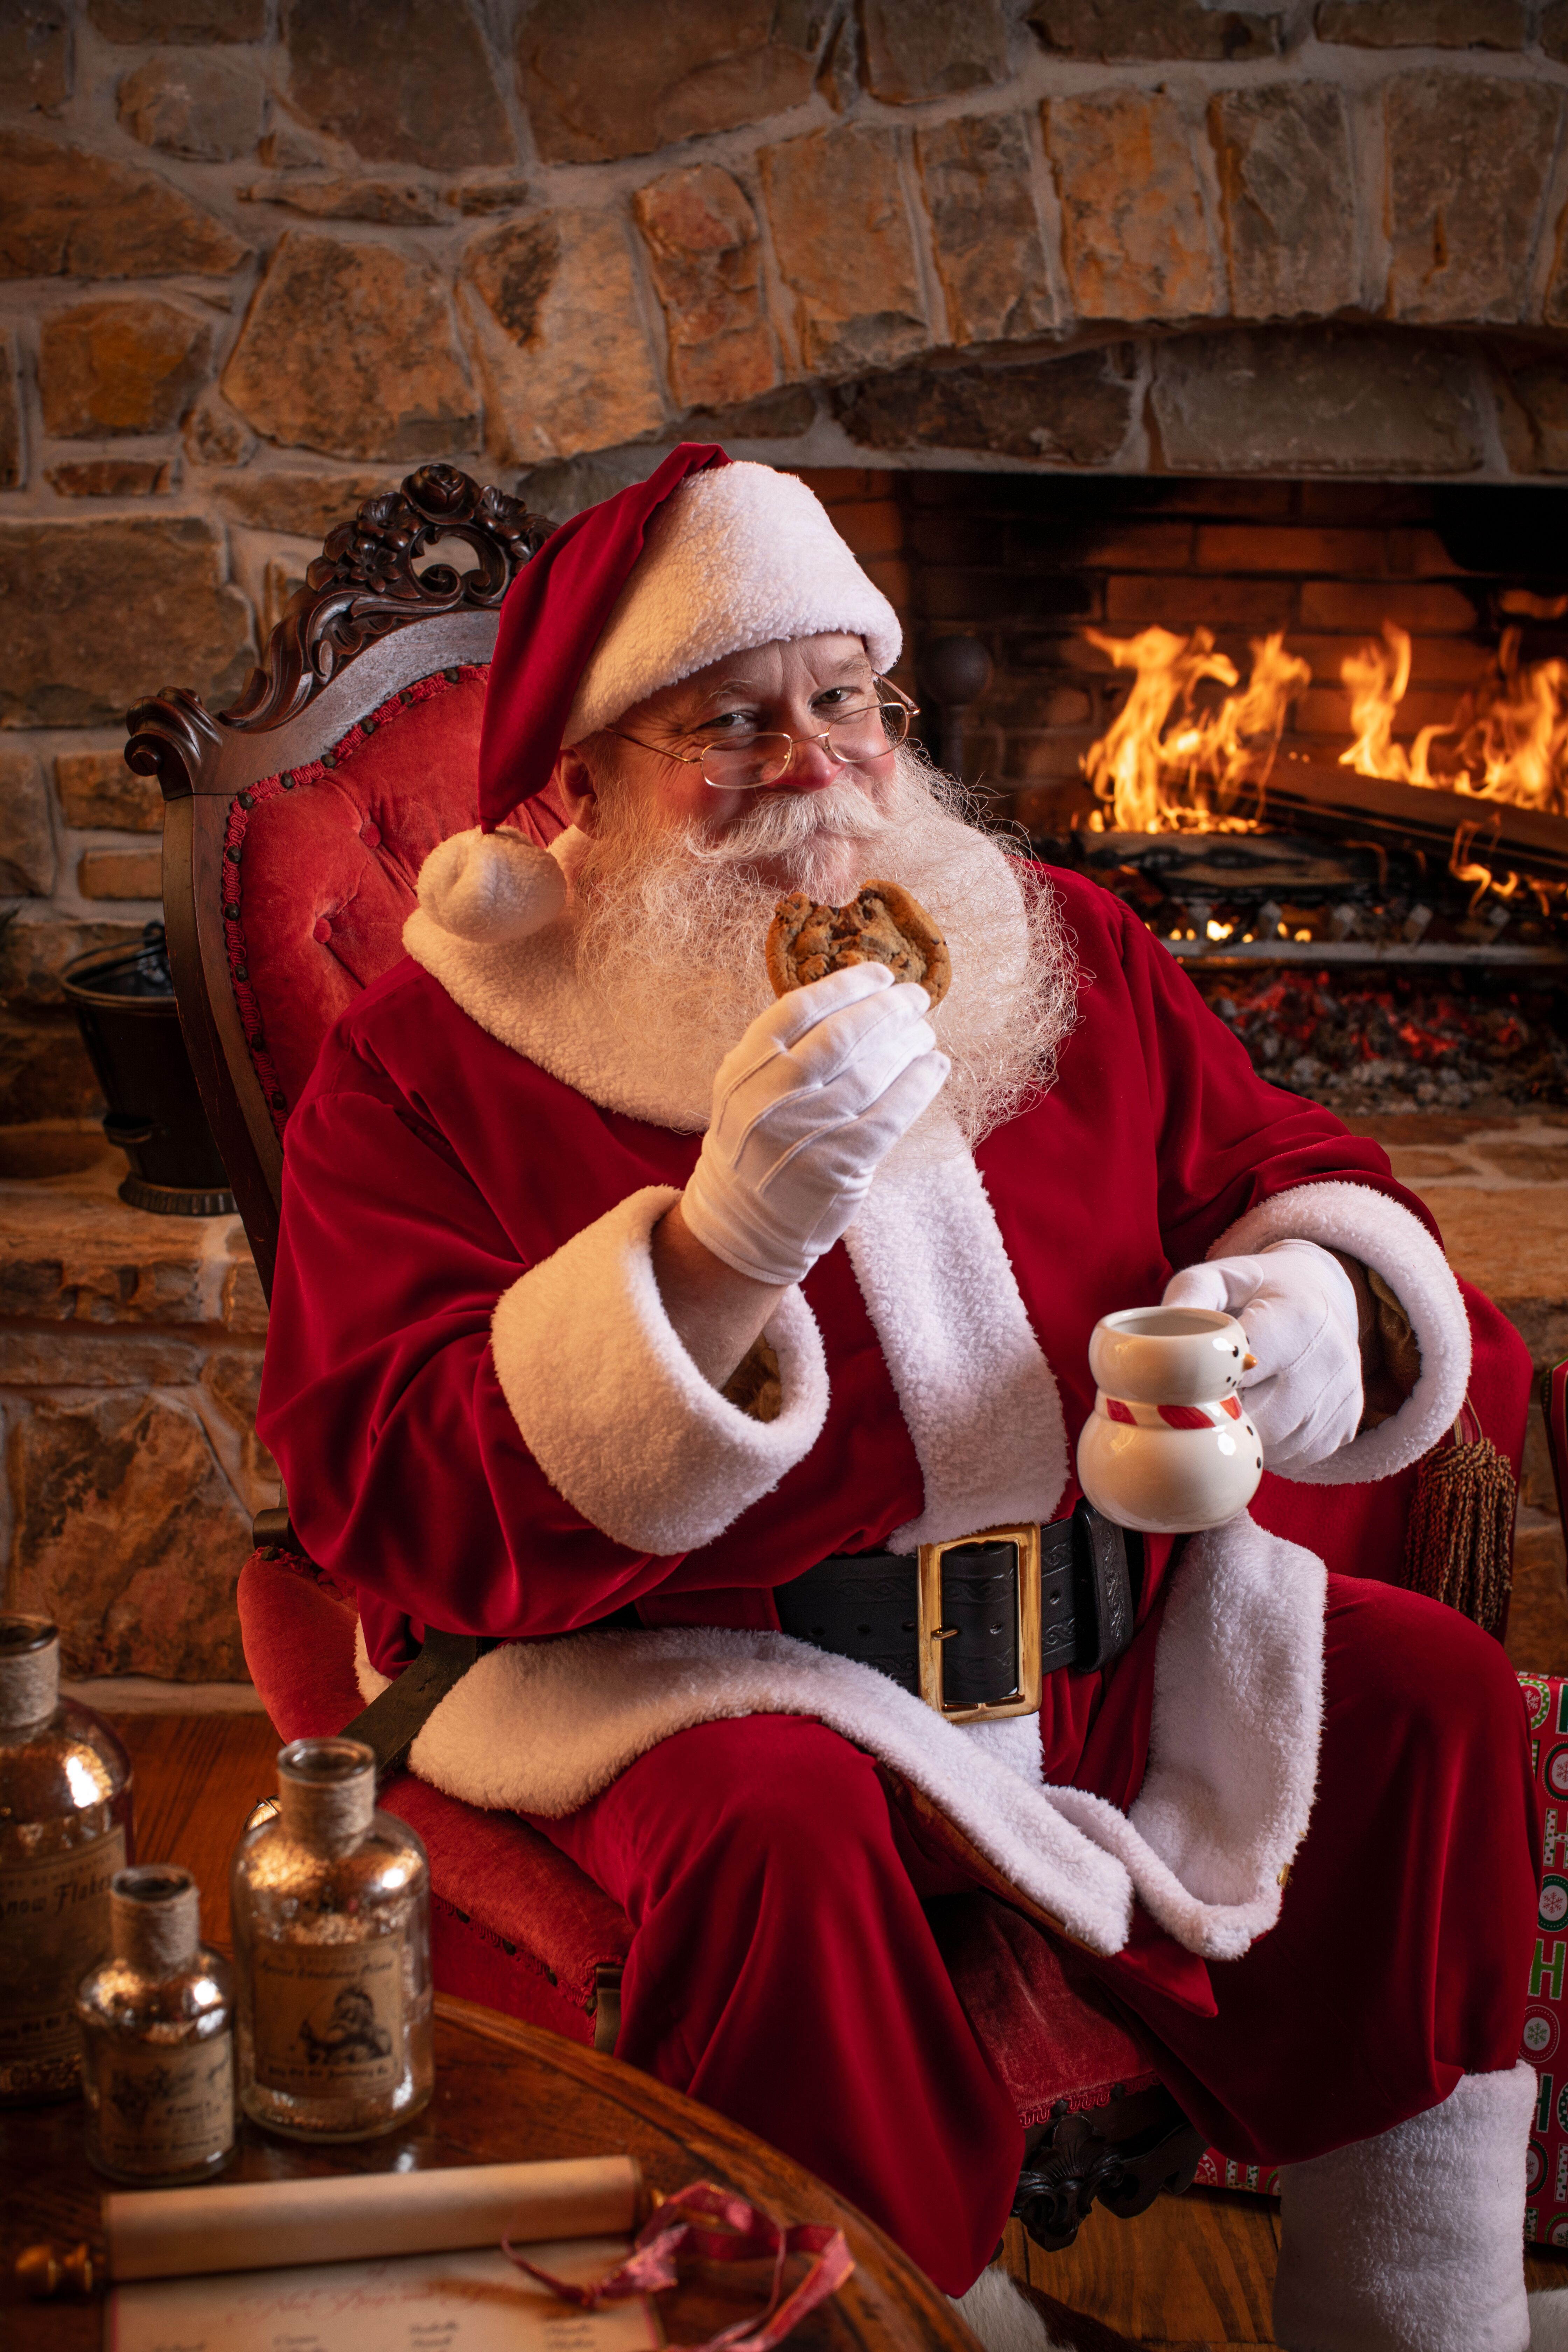 breaskfast with Santa Claus